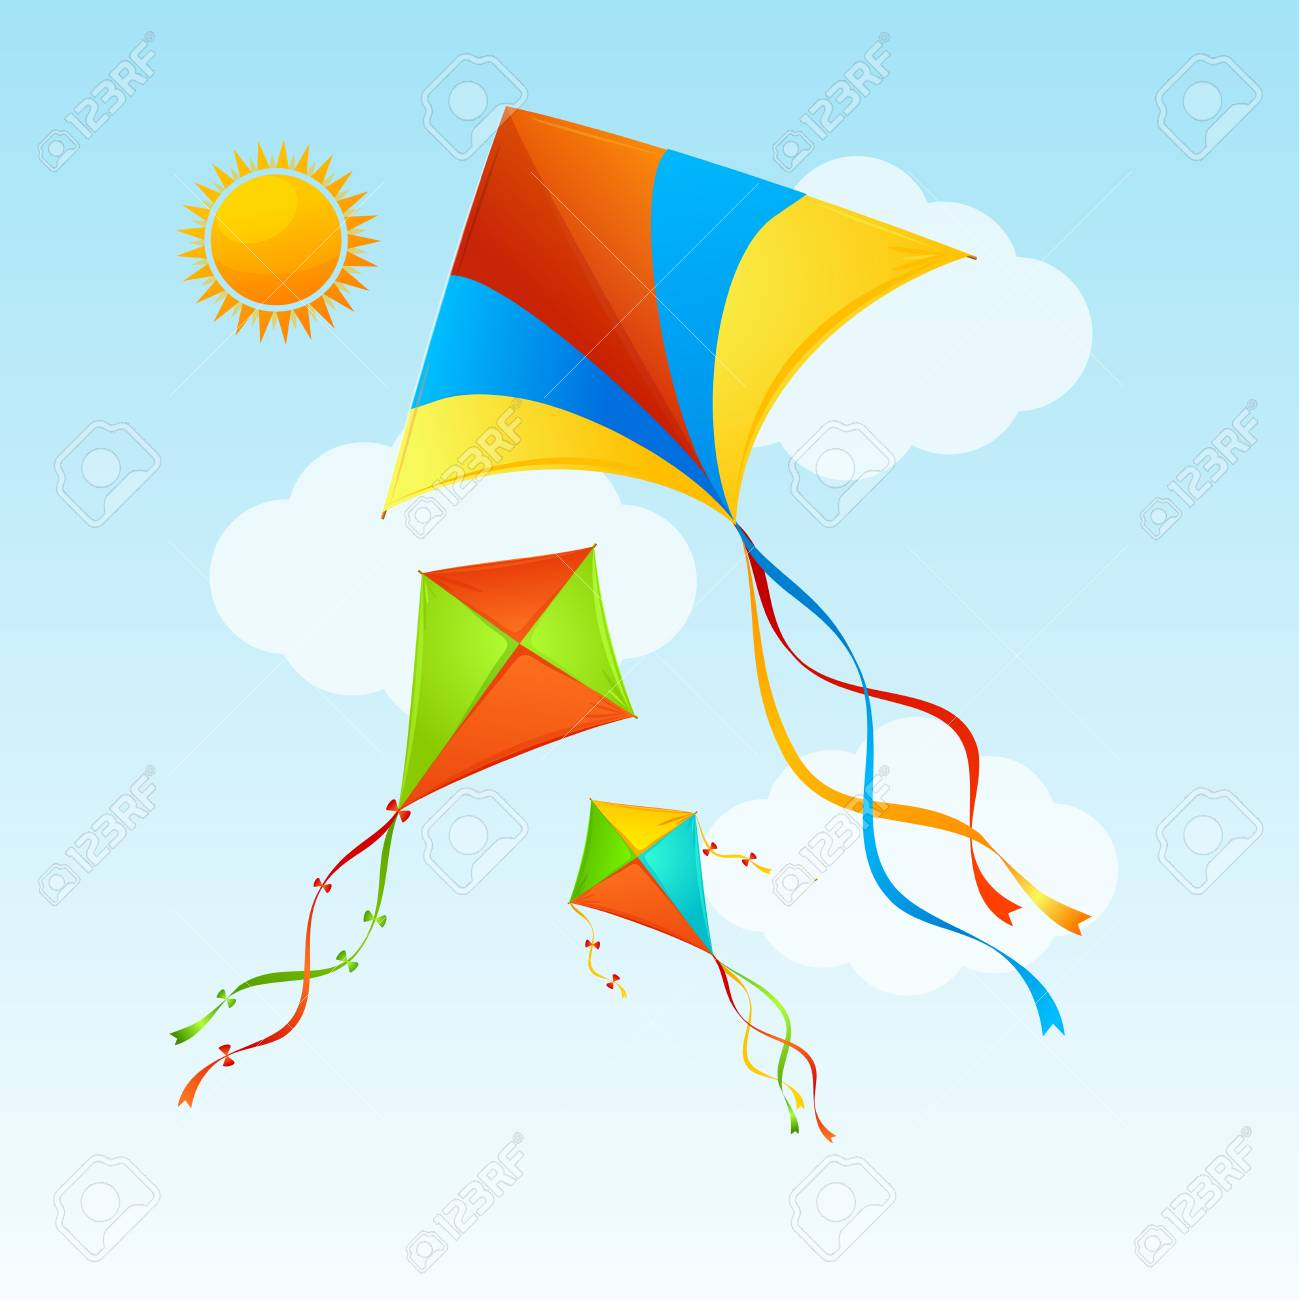 Flying Kite And Clouds On A Blue Sky Summer Concept Background 1299x1300